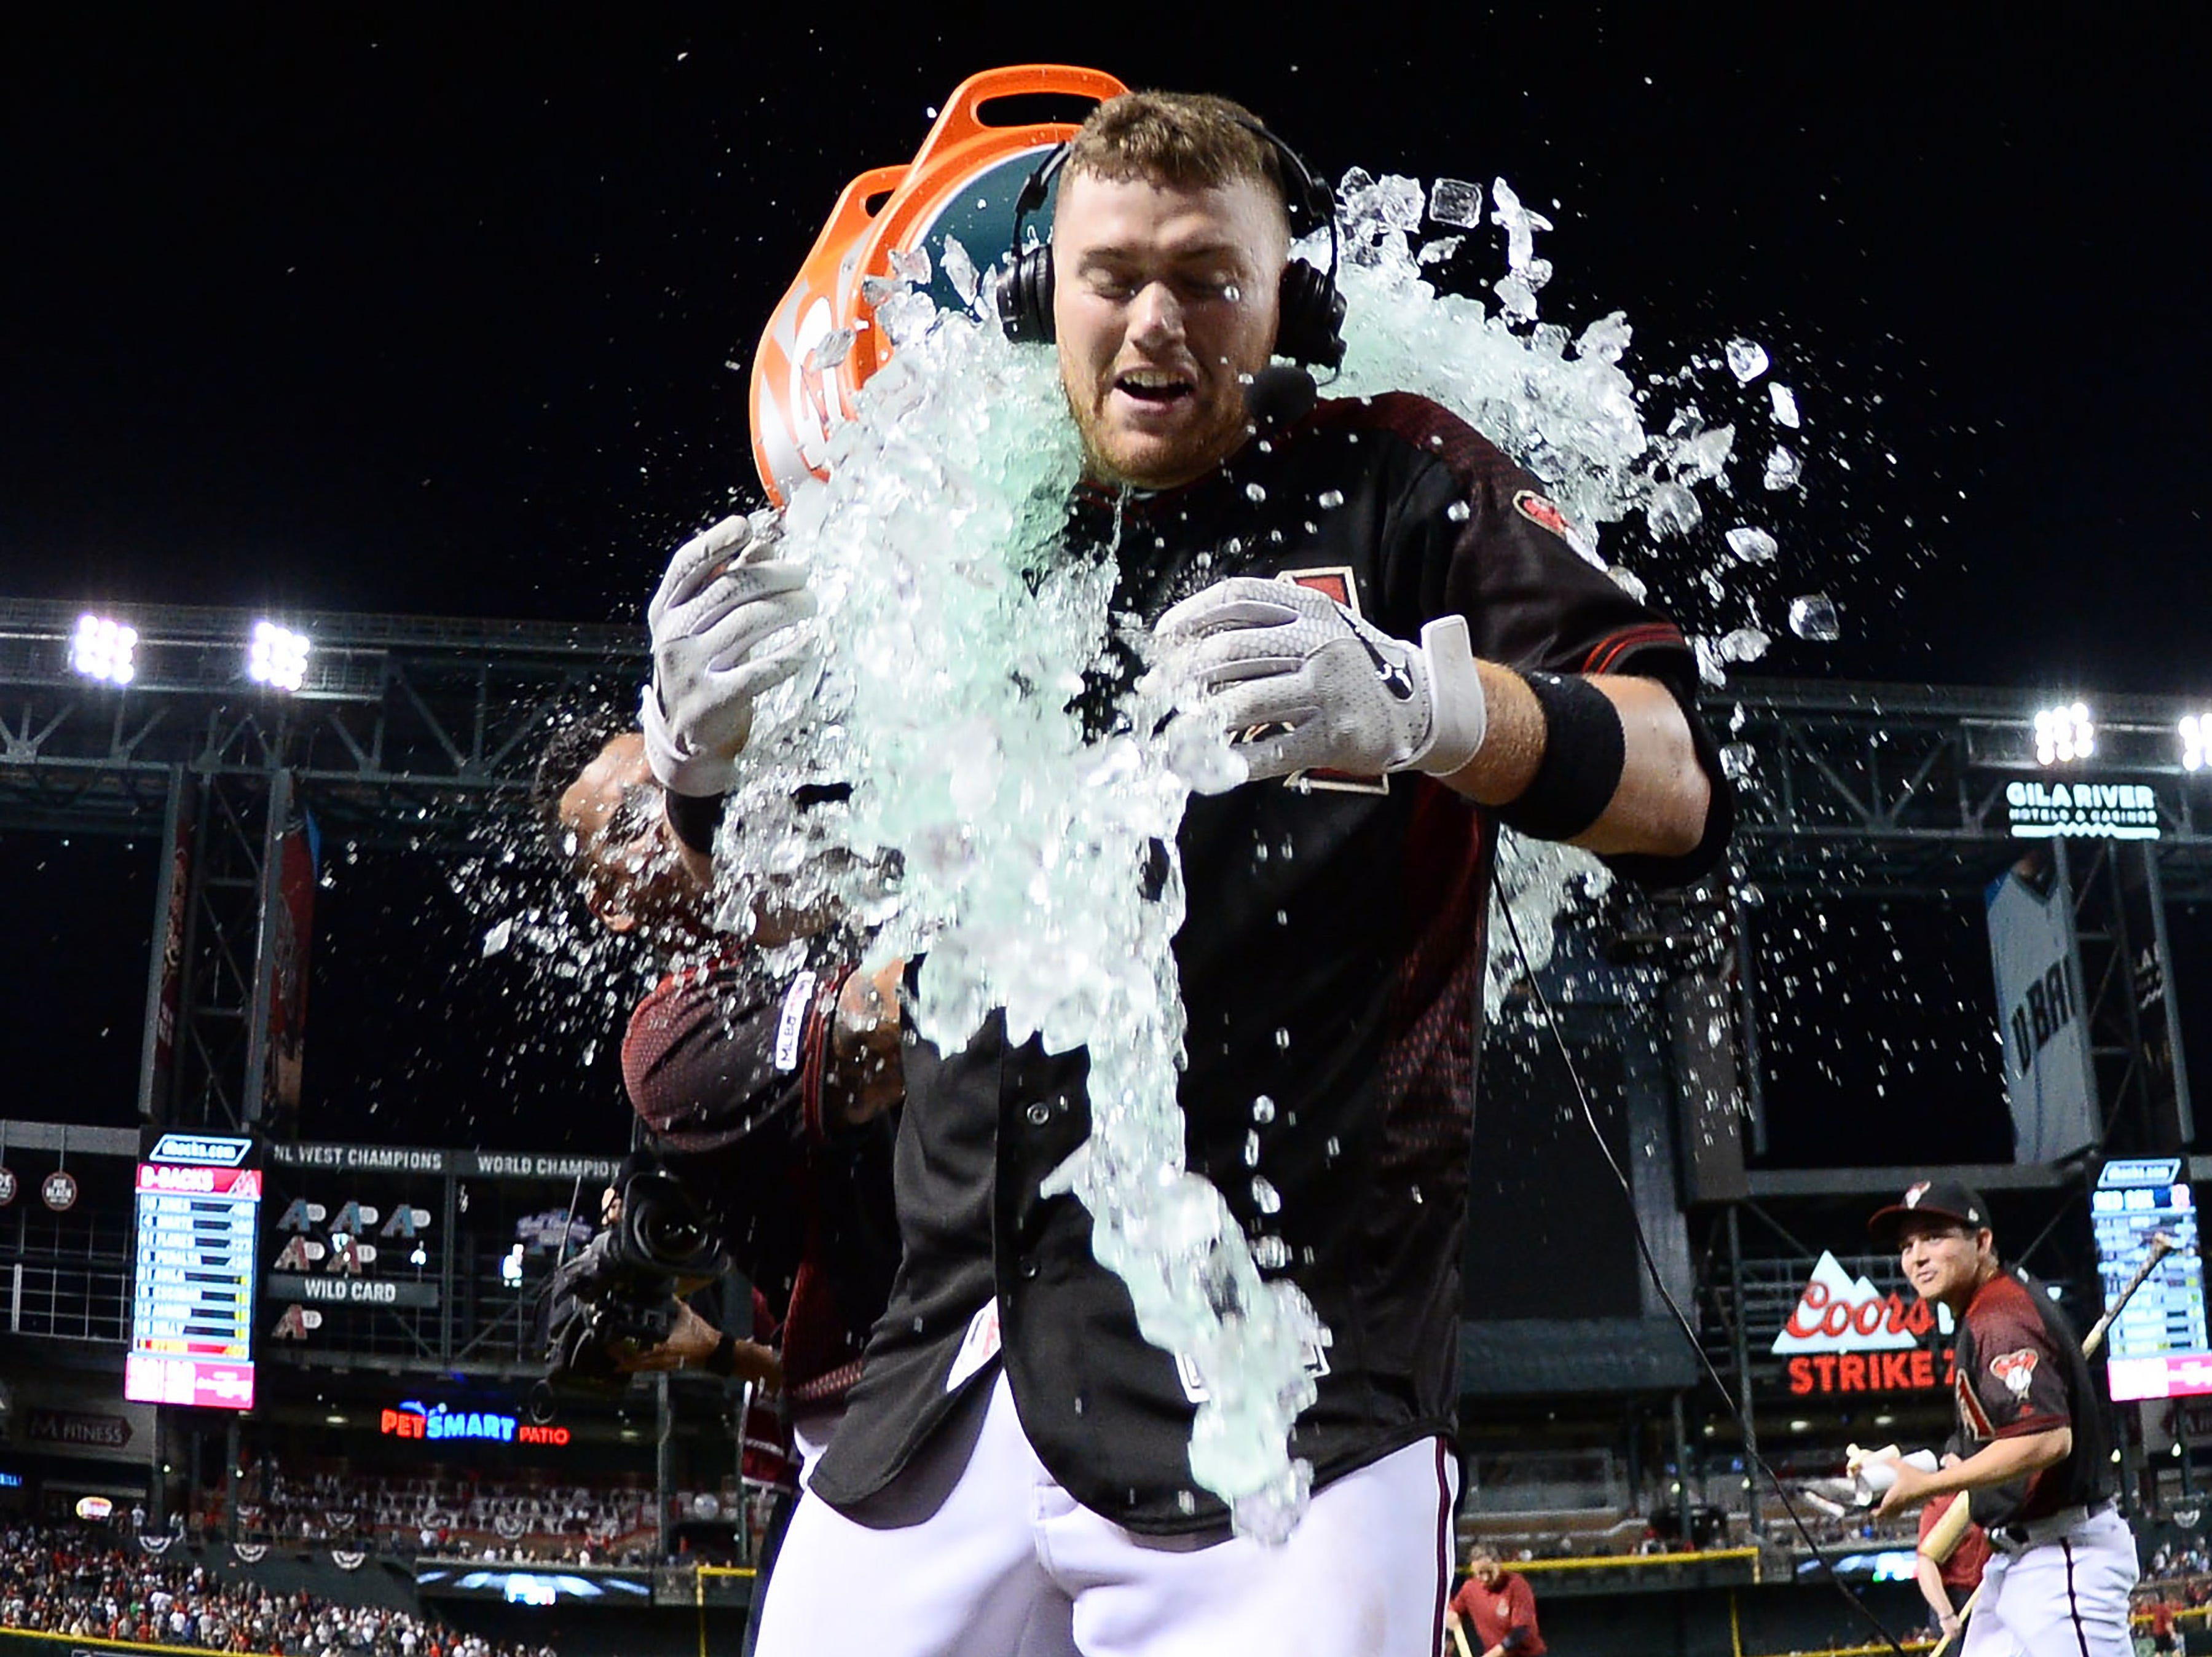 Apr 6, 2019; Phoenix, AZ, USA; Arizona Diamondbacks catcher Carson Kelly (18) is doused with Gatorade by Arizona Diamondbacks right fielder David Peralta (6) after ninth inning walk off single against the Boston Red Sox at Chase Field. Mandatory Credit: Joe Camporeale-USA TODAY Sports